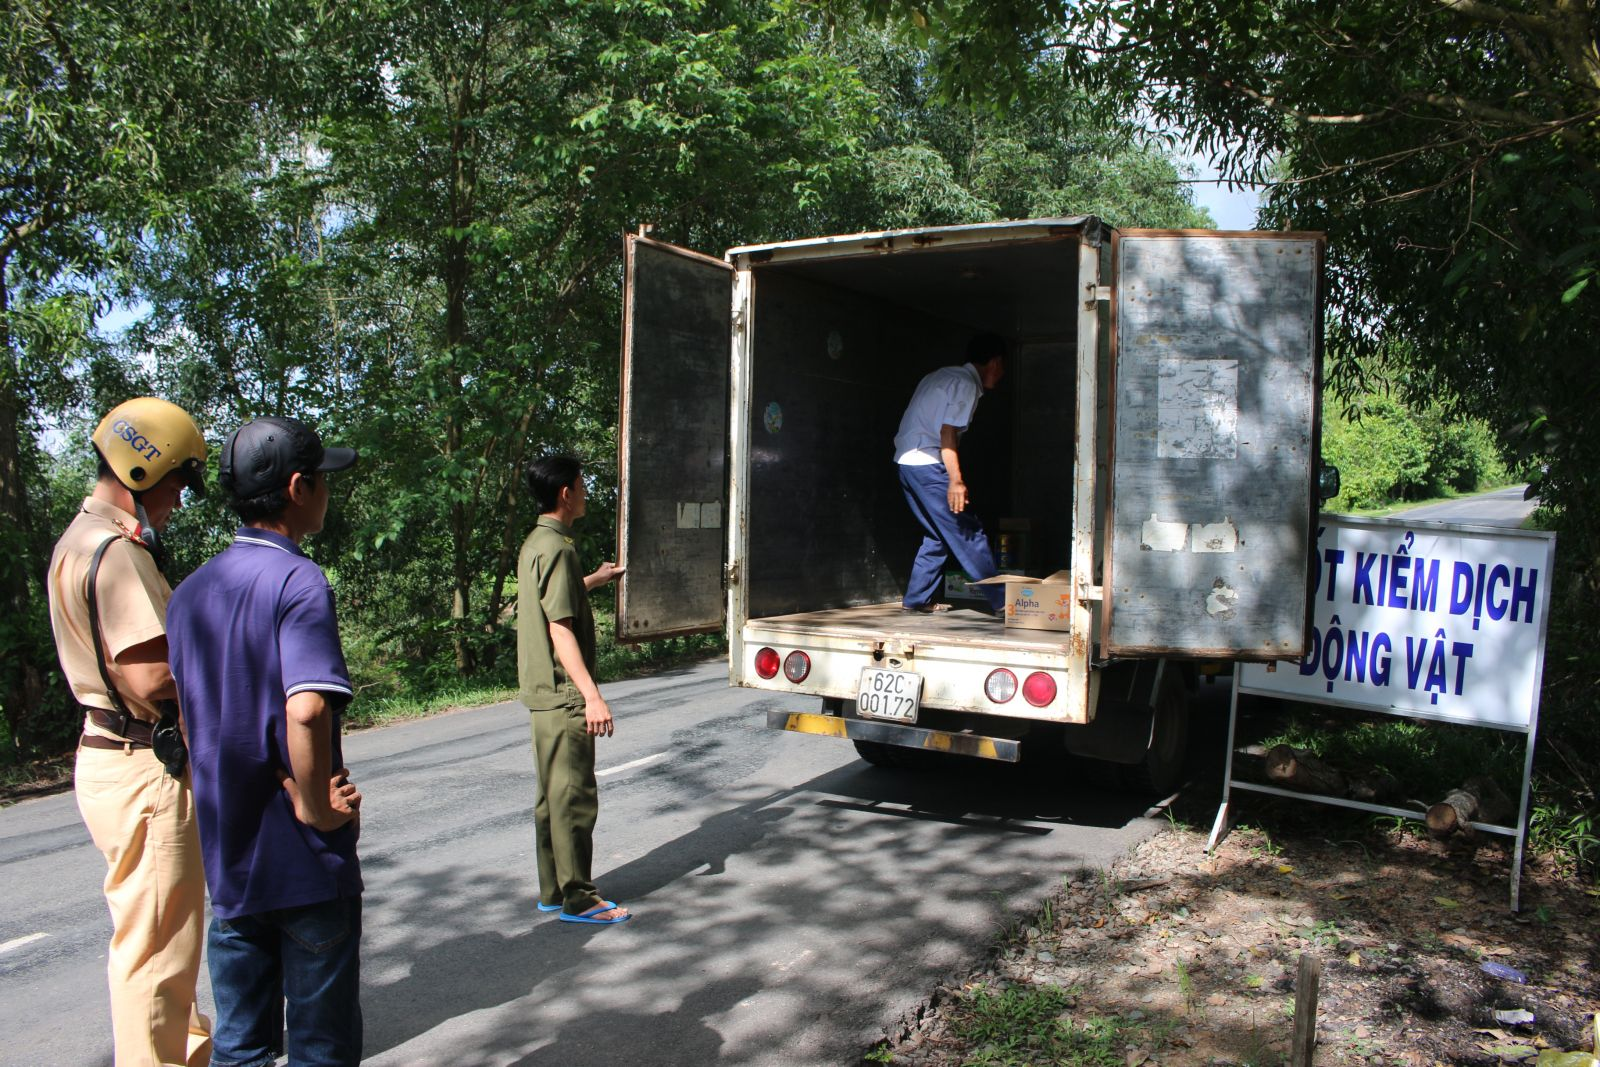 The district establishes a quarantine checkpoint to control means of transporting pigs and pig products in and out of the epidemic area